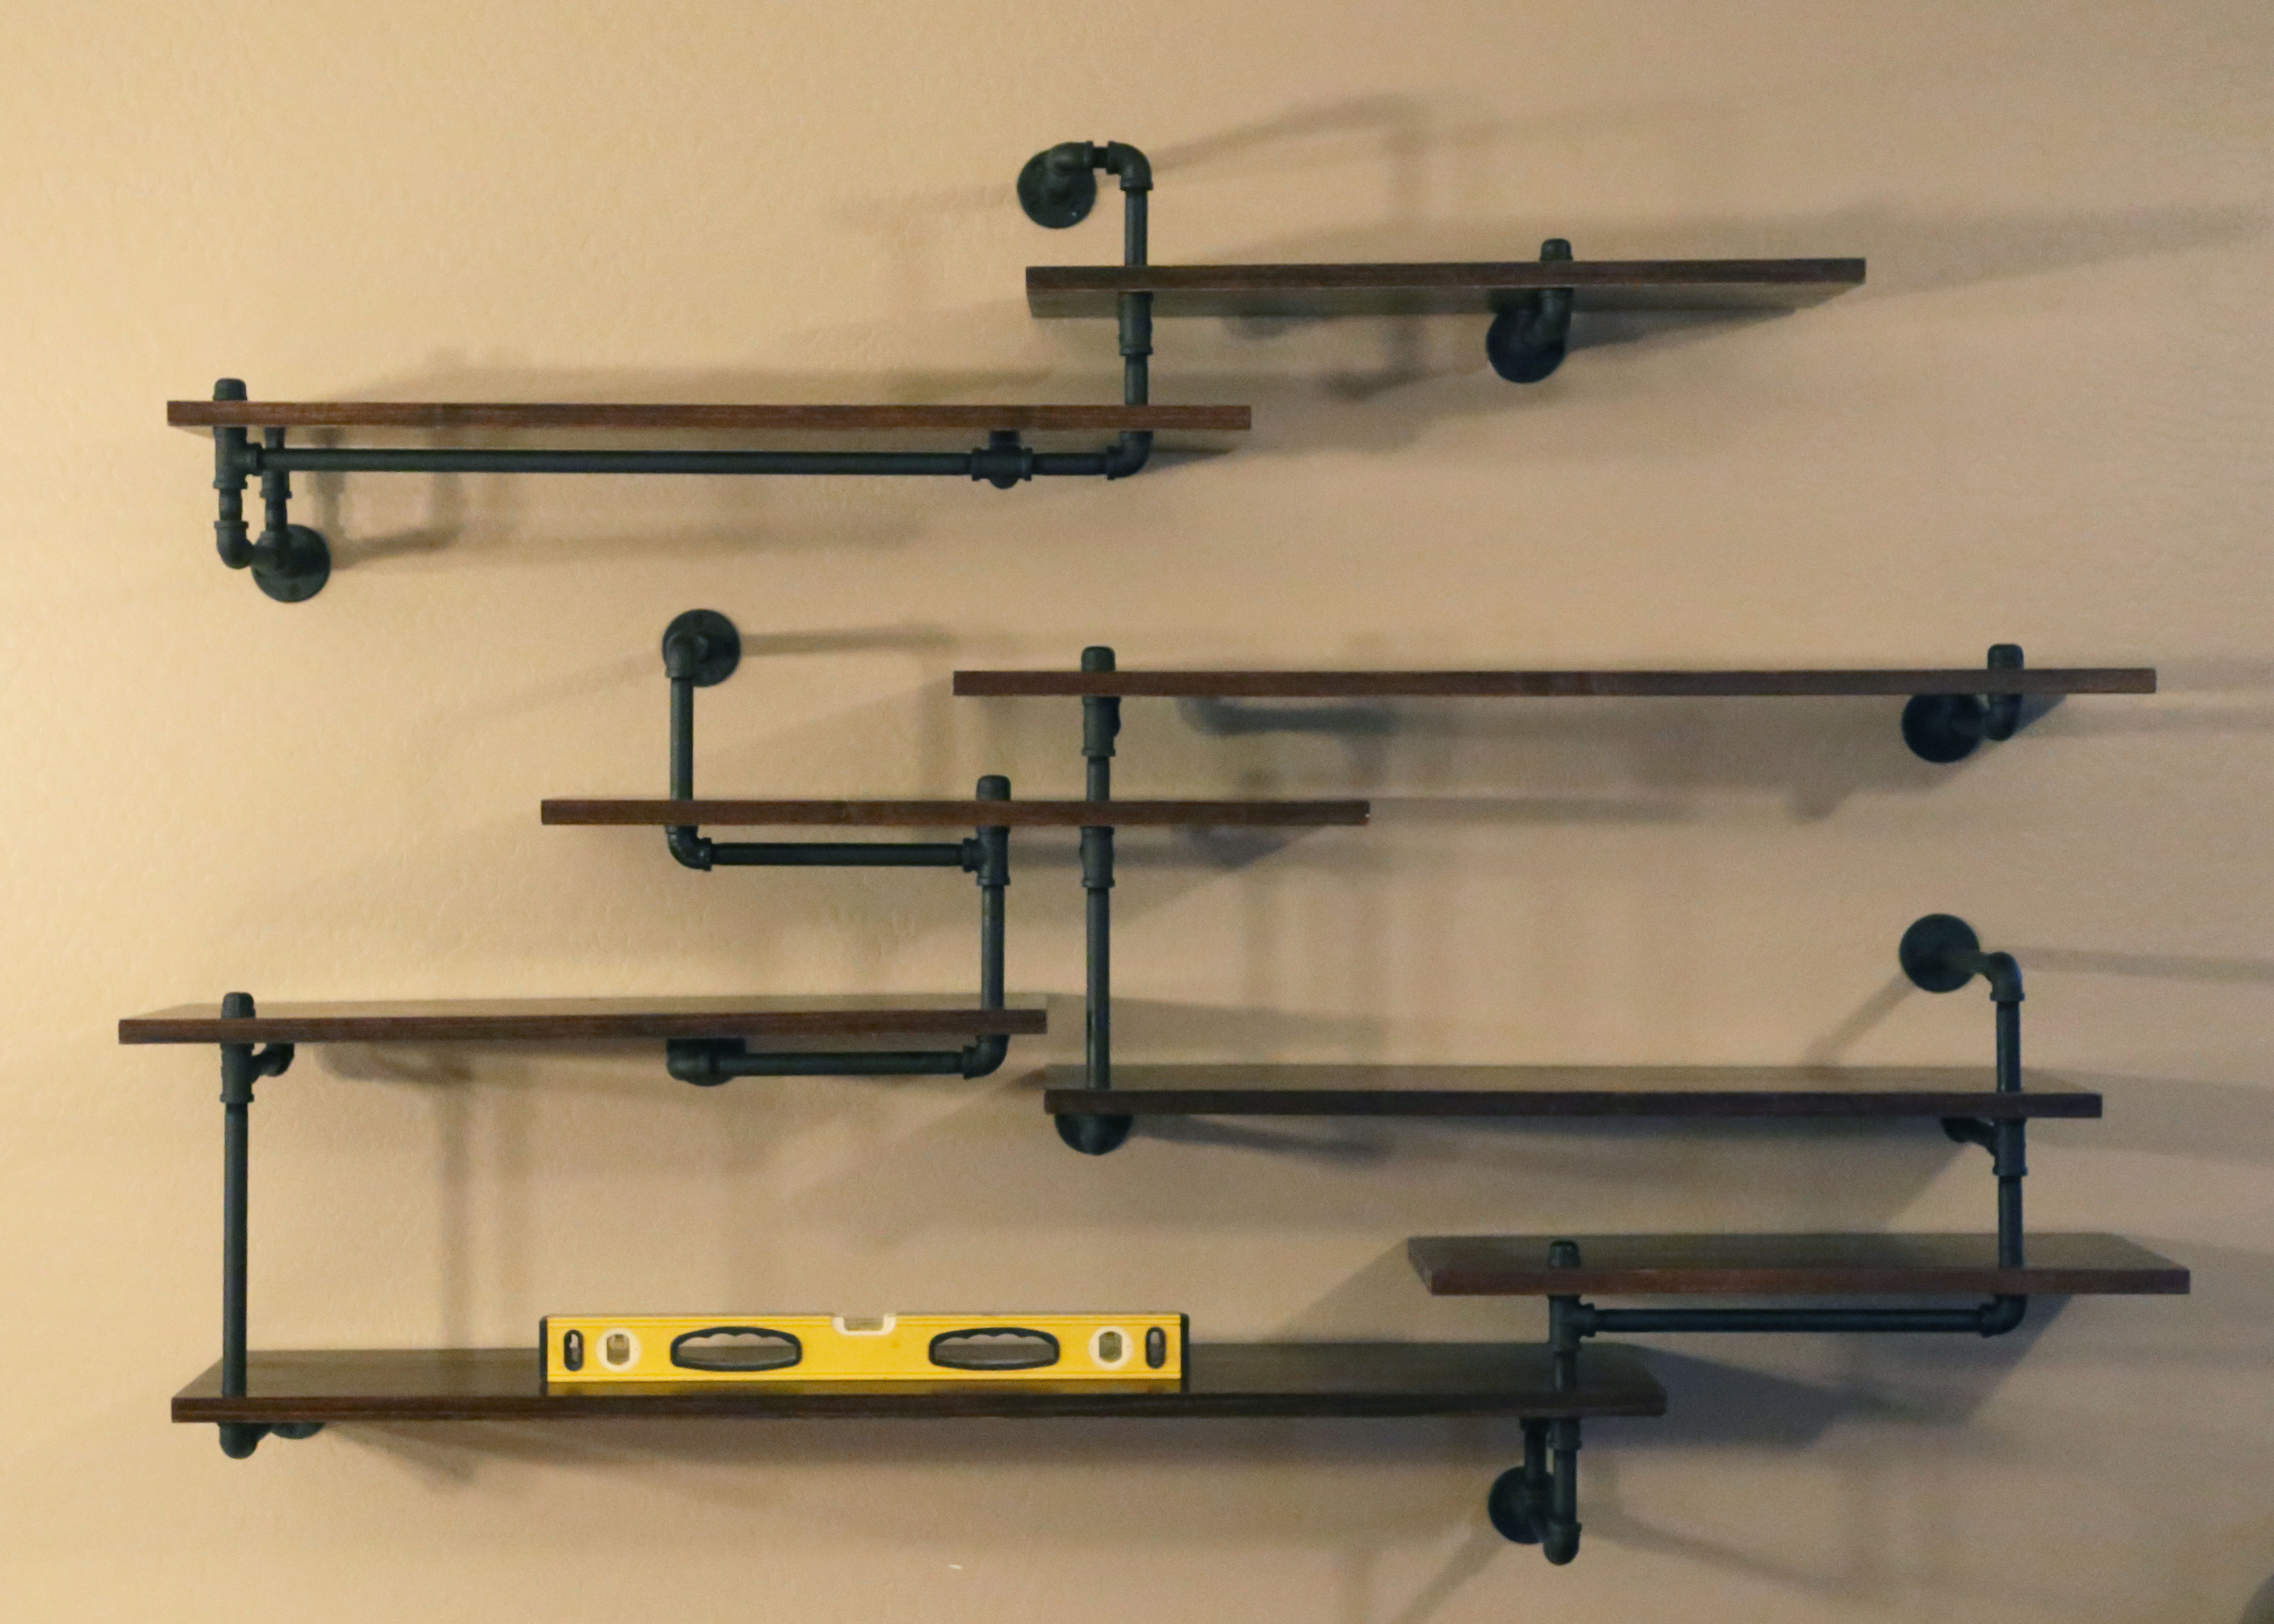 Picture of Industrial Pipe Shelving Built-In